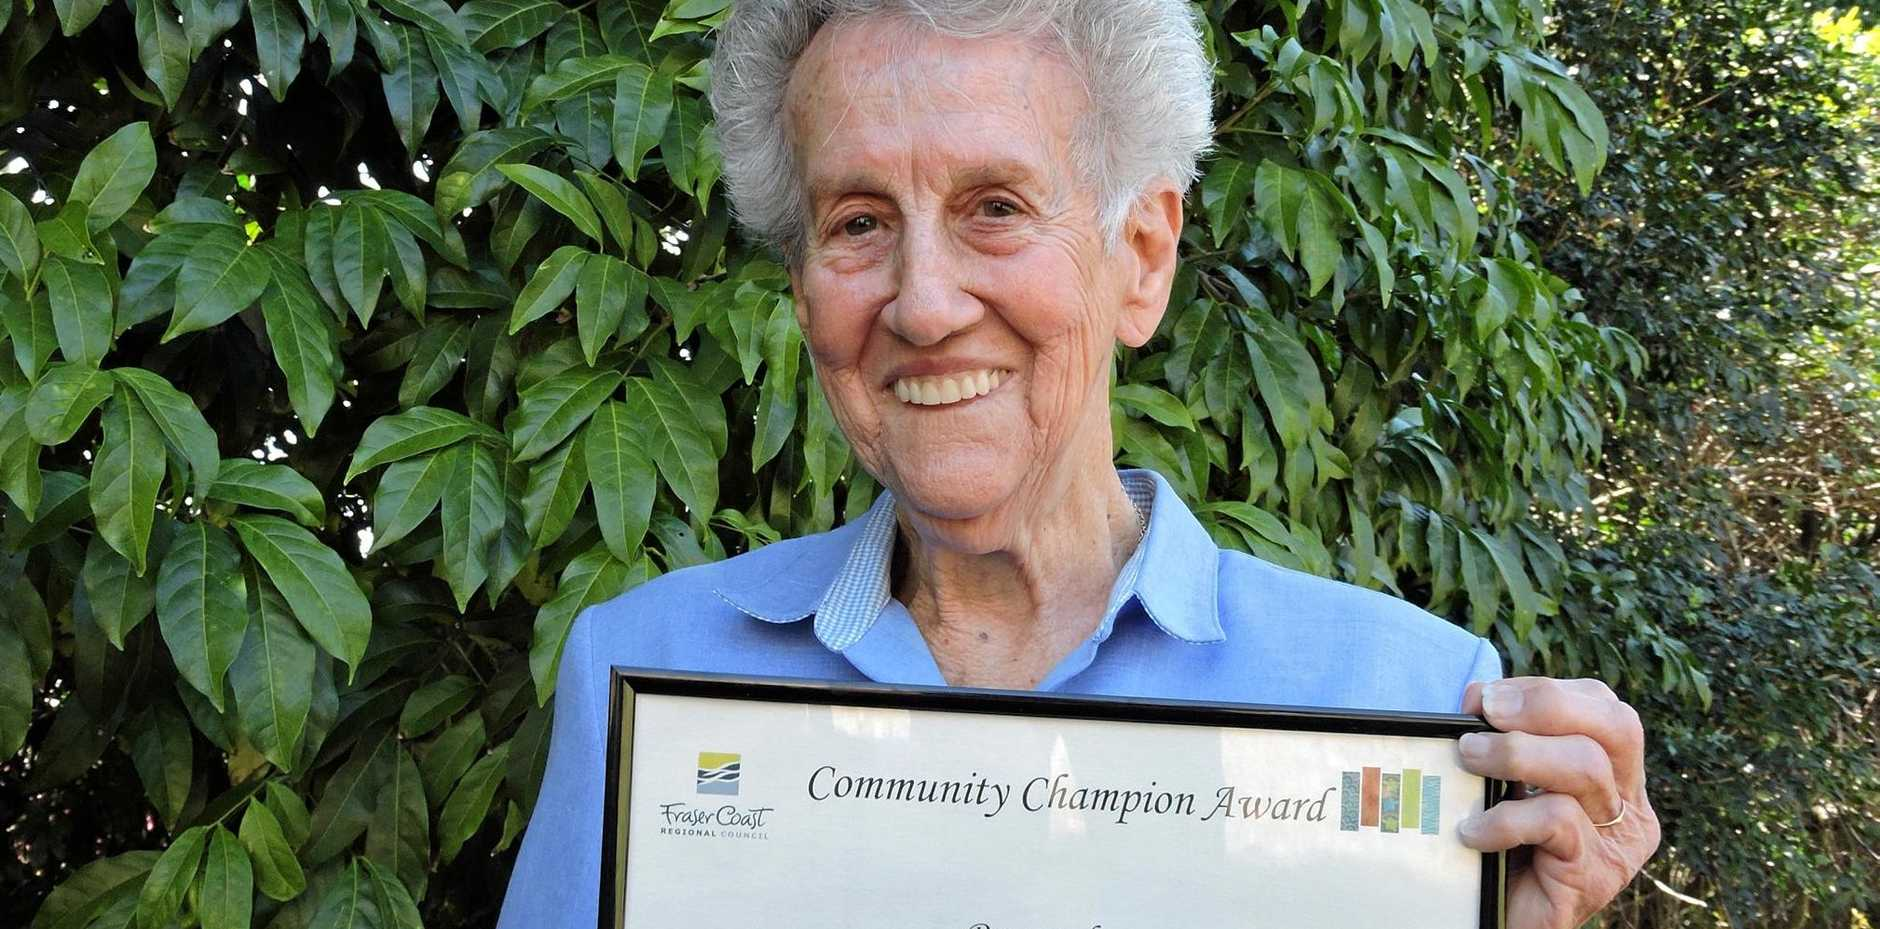 WELL DONE: Donna Suter was presented the Community Champion Award at the Fraser Coast Regional Council's September meeting by the mayor and councillors. The award was given in recognition of Donna's service to the Maryborough community.